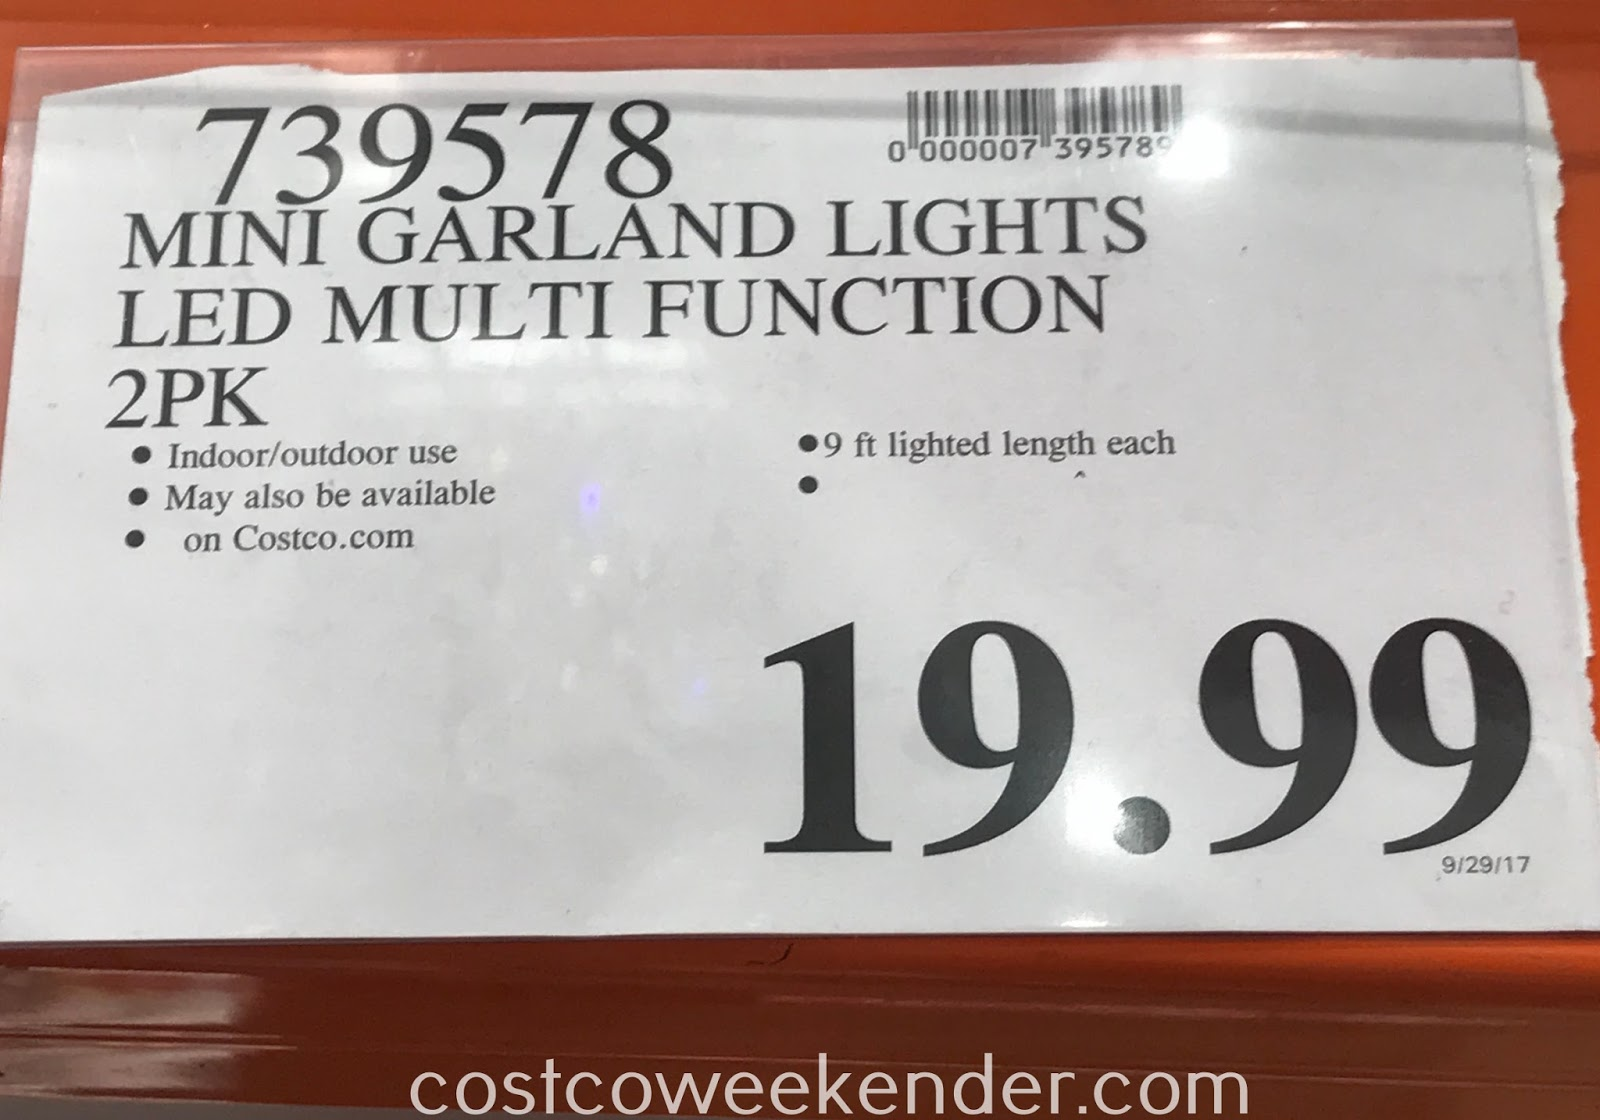 Deal for a 2 pack of Mini Multifunction Garland LED Lights at Costco